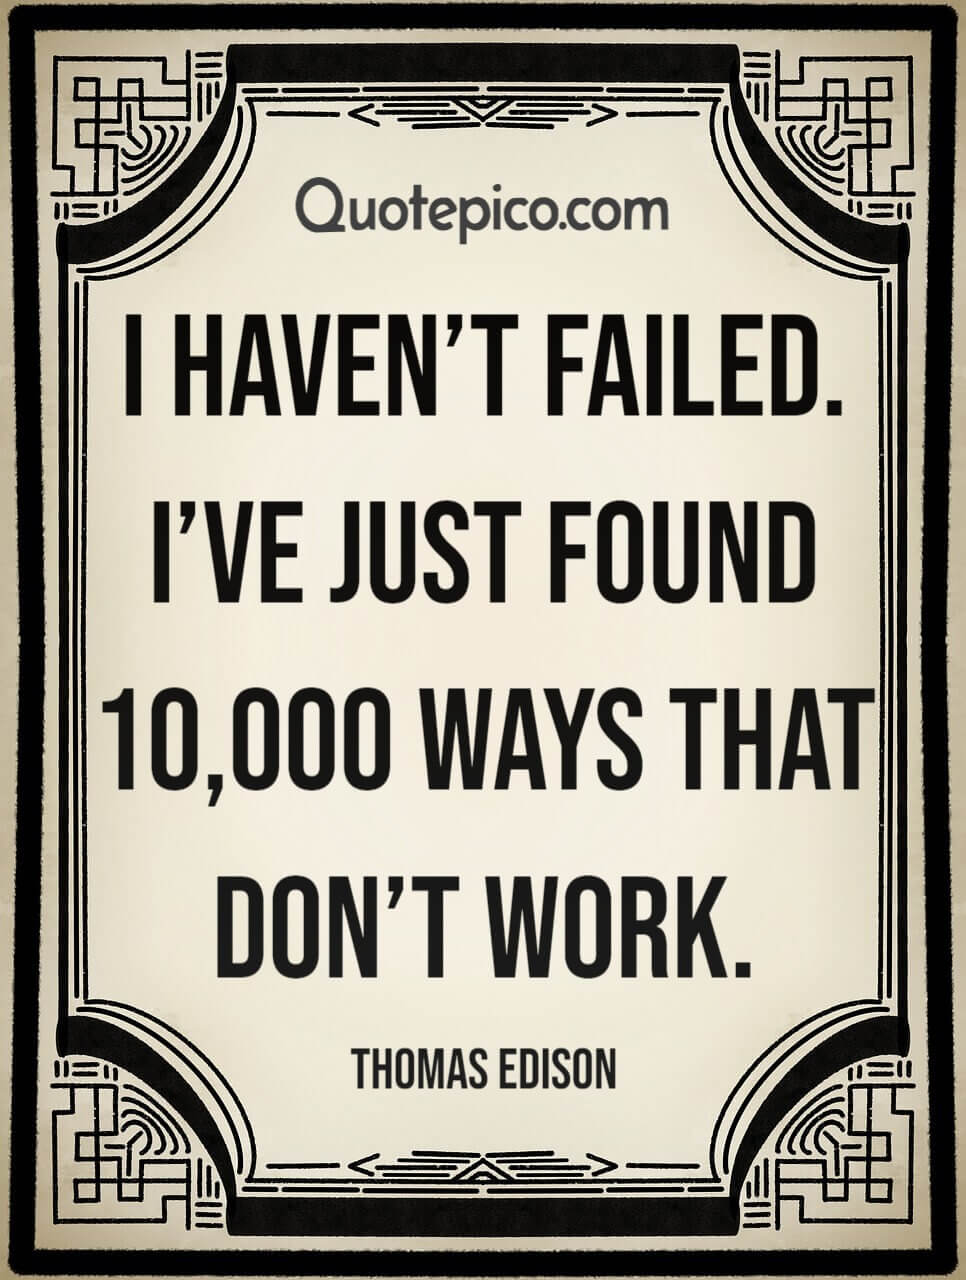 [Image] There are no Failures. Only Opportunity for Improvement